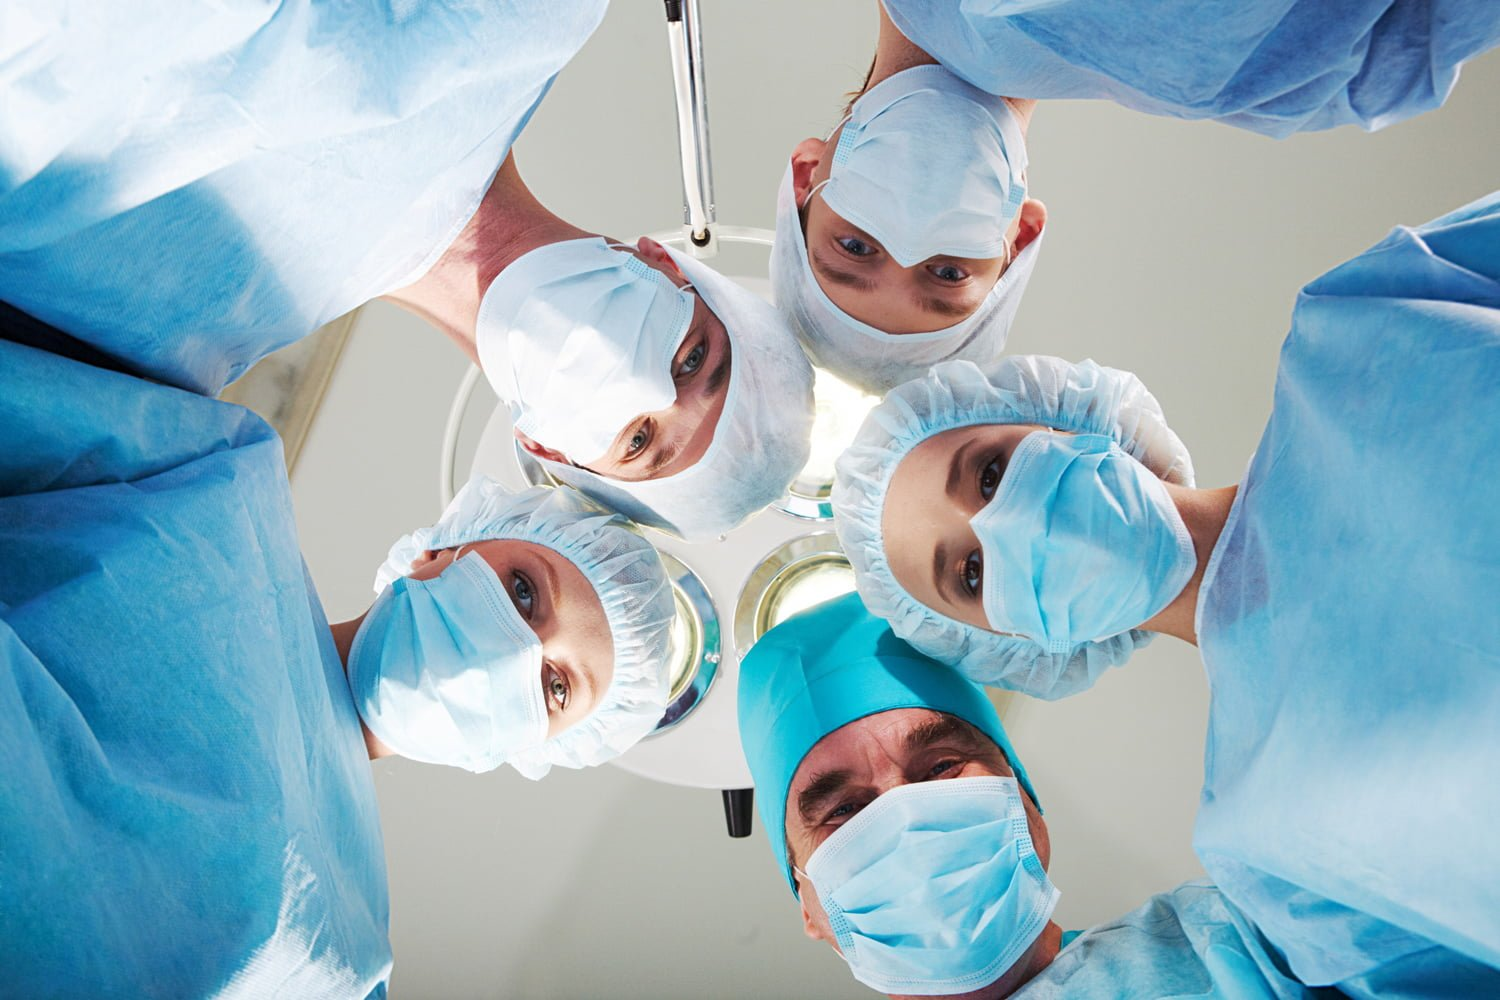 Surgeons Looking Down Upon Patient in Operating Room